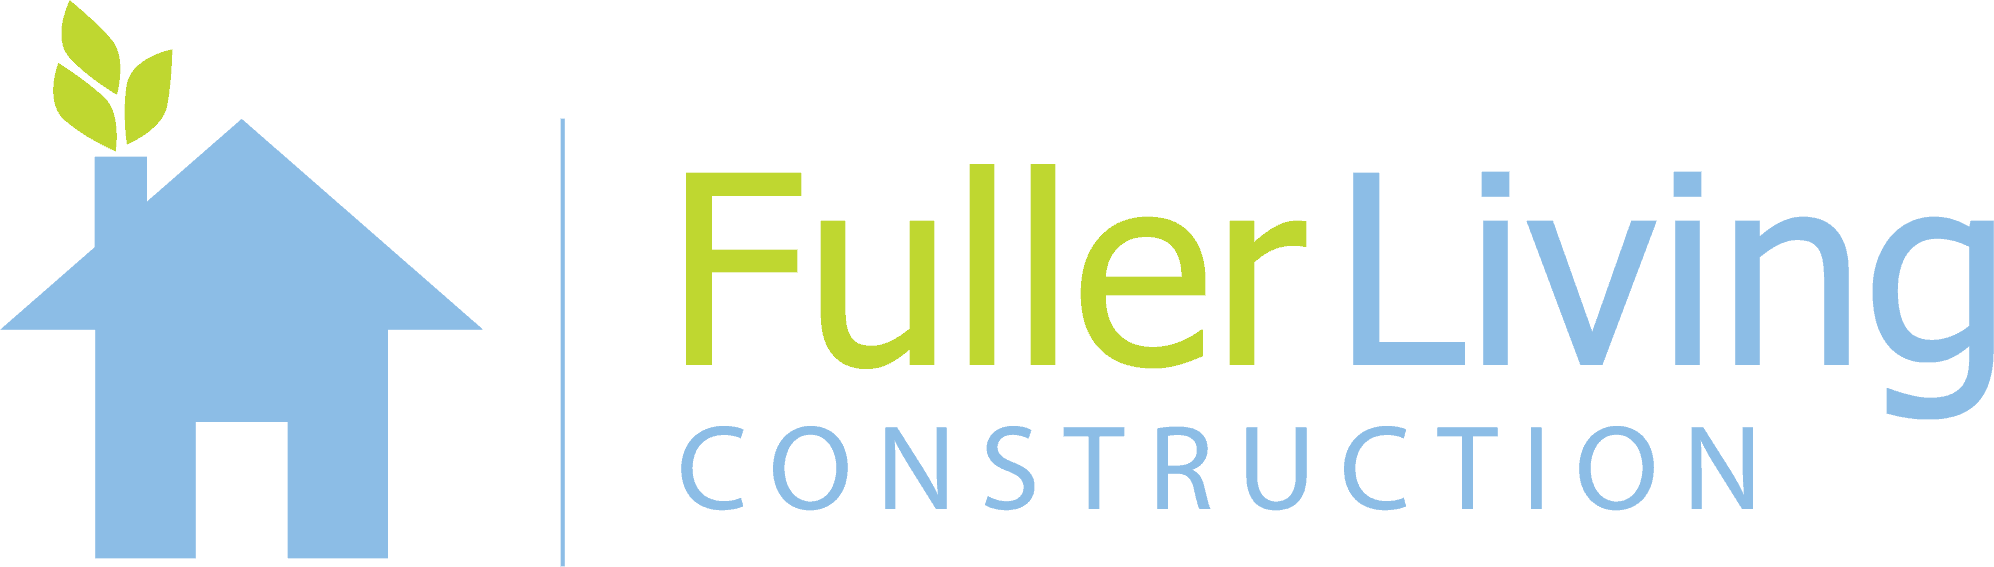 Fuller Living Construction